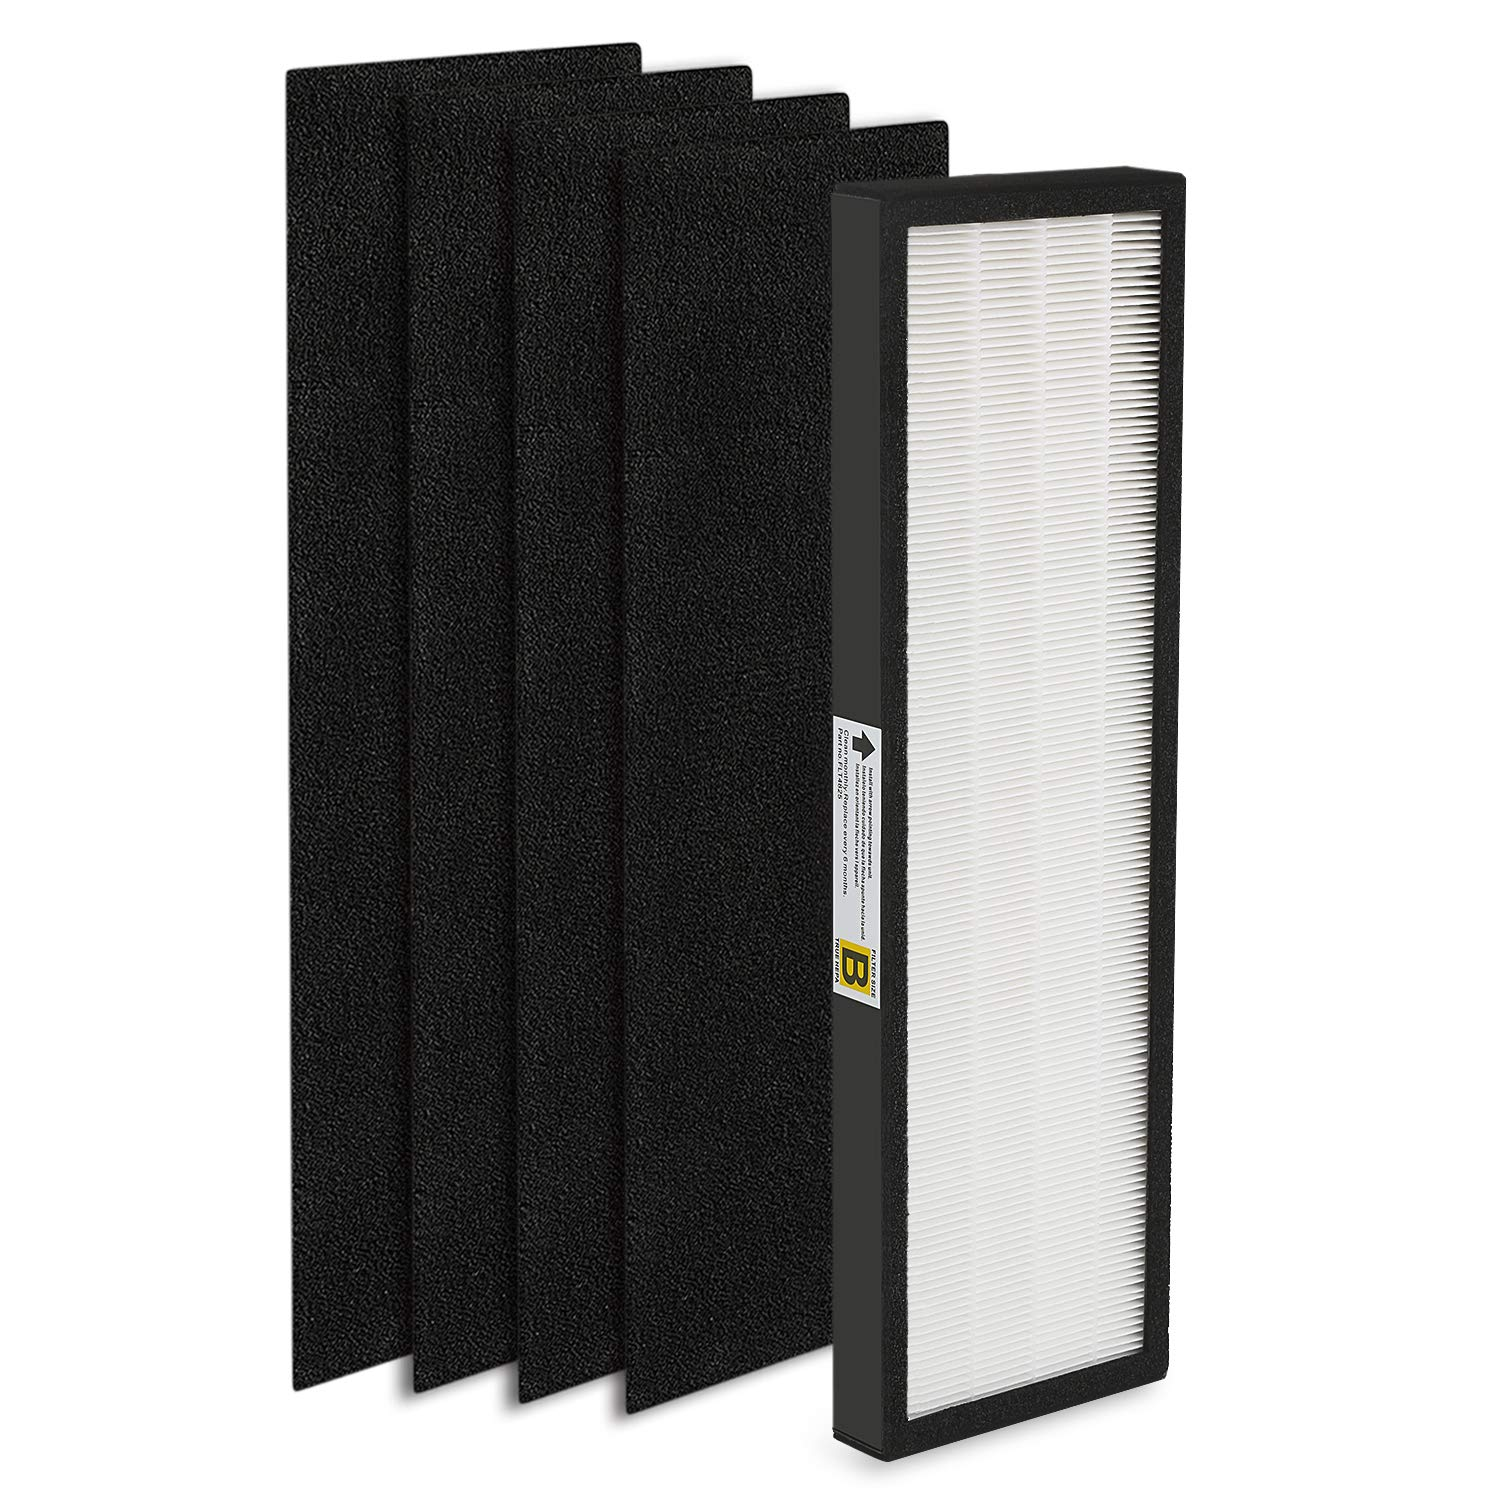 isinlive 1 HEPA Filter and 4 Pack of Activated Carbon Pre Filters Compatible Germ Guardian Air Purifier AC4300 AC4800 AC4900 AC4825 and FLT4825 Filter B